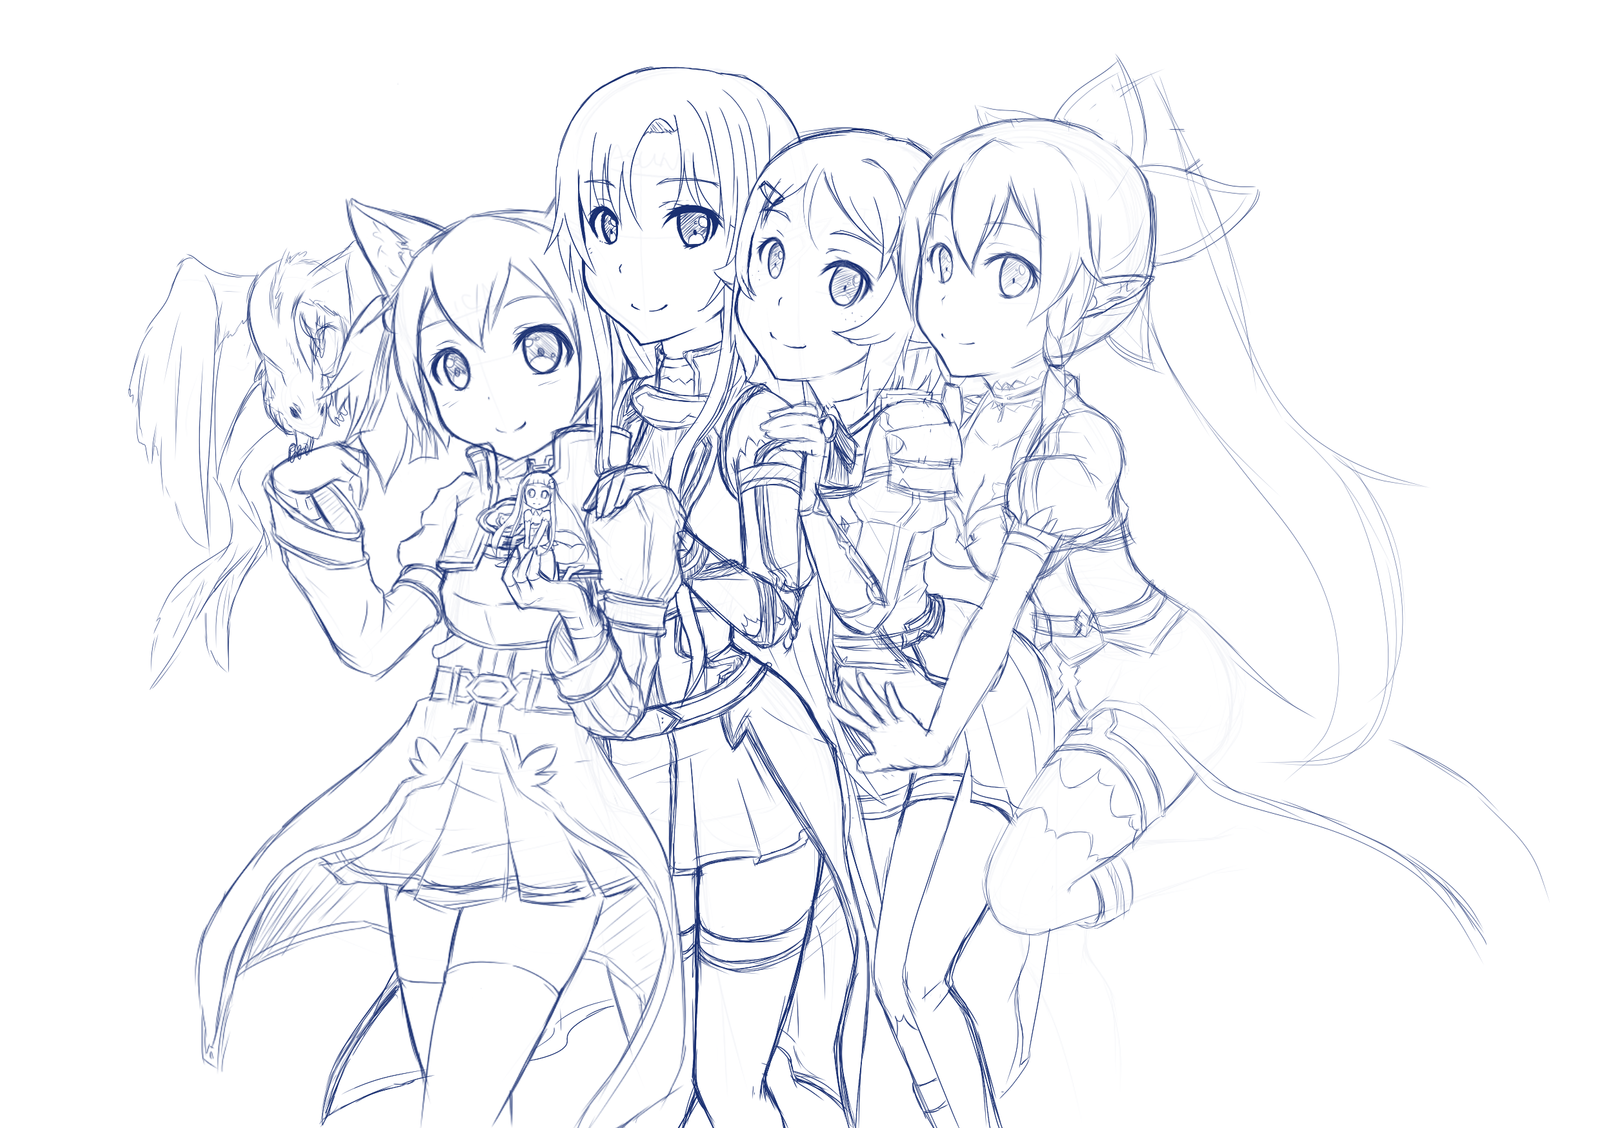 Line Art Group : Sword art online wip by candy arts on deviantart